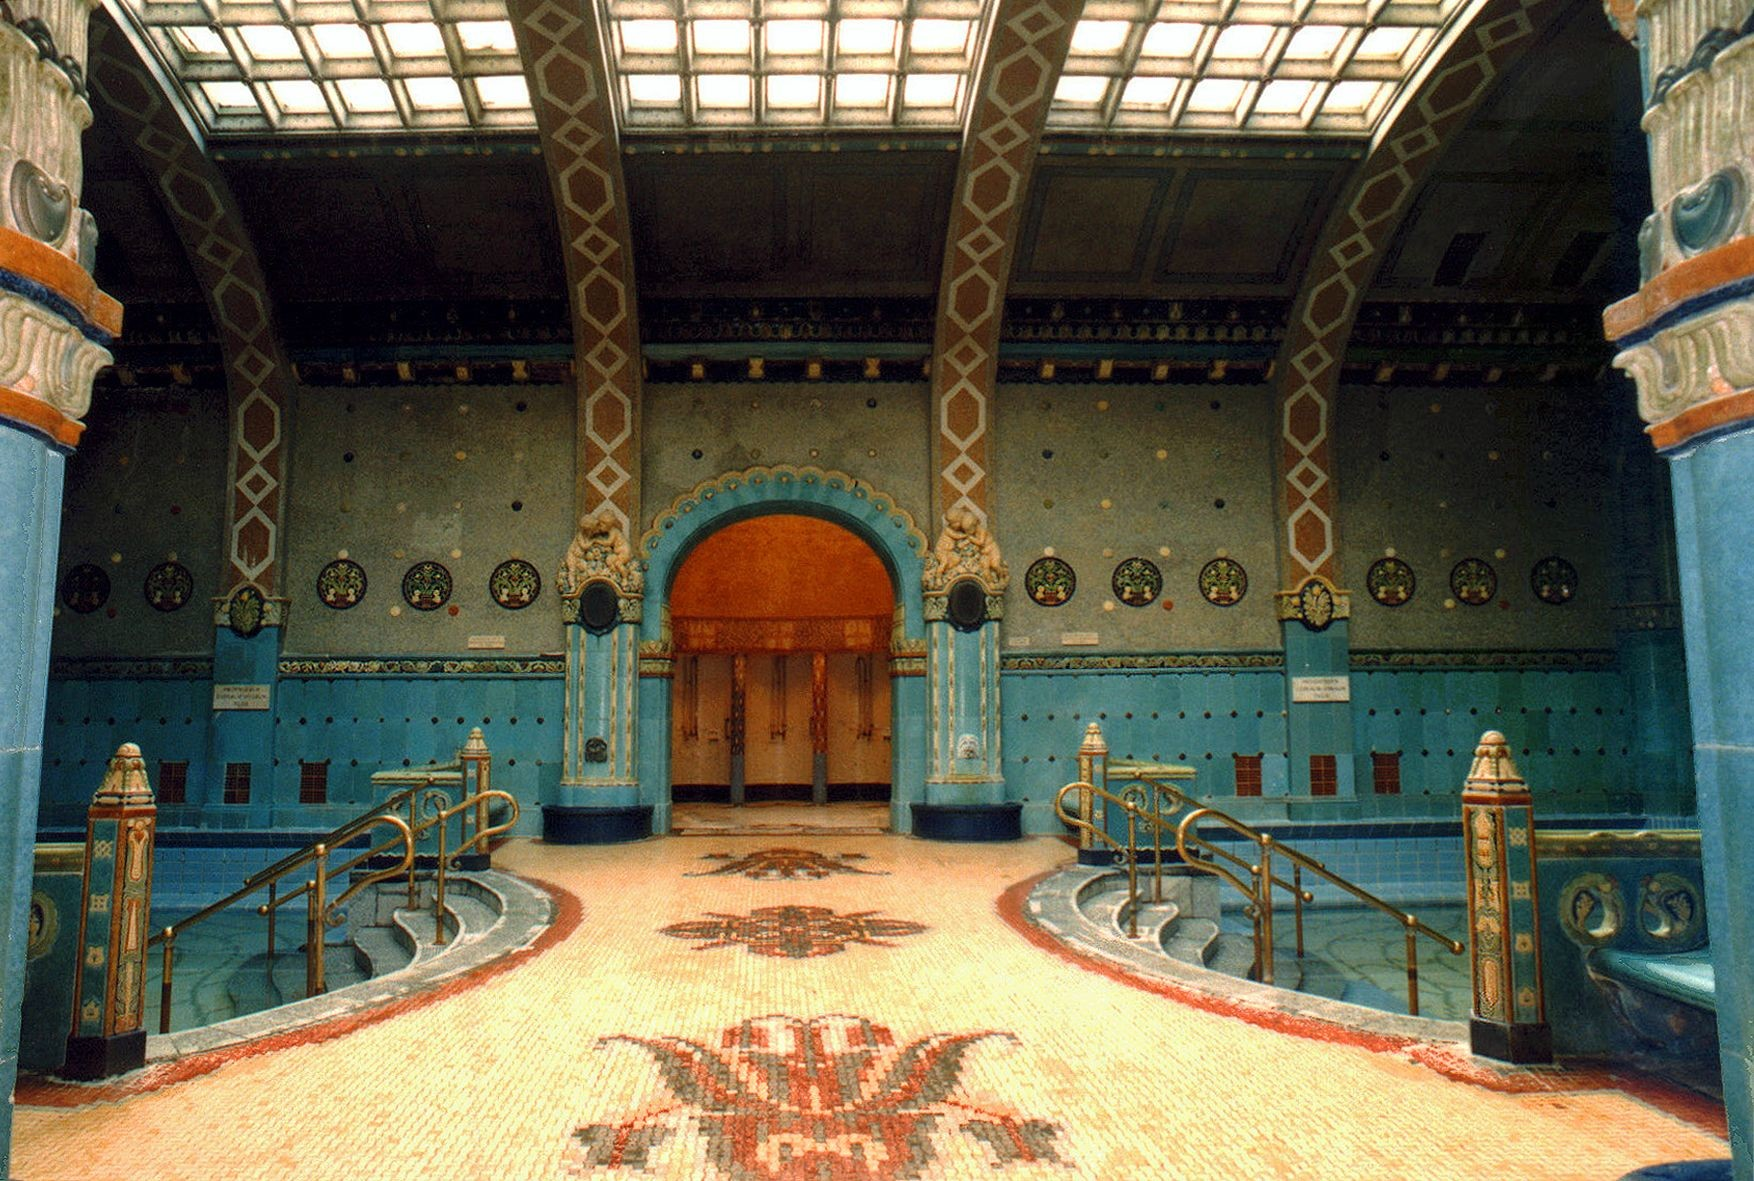 St. Gellért Thermal Bath and Swimming Pool (1).jpg